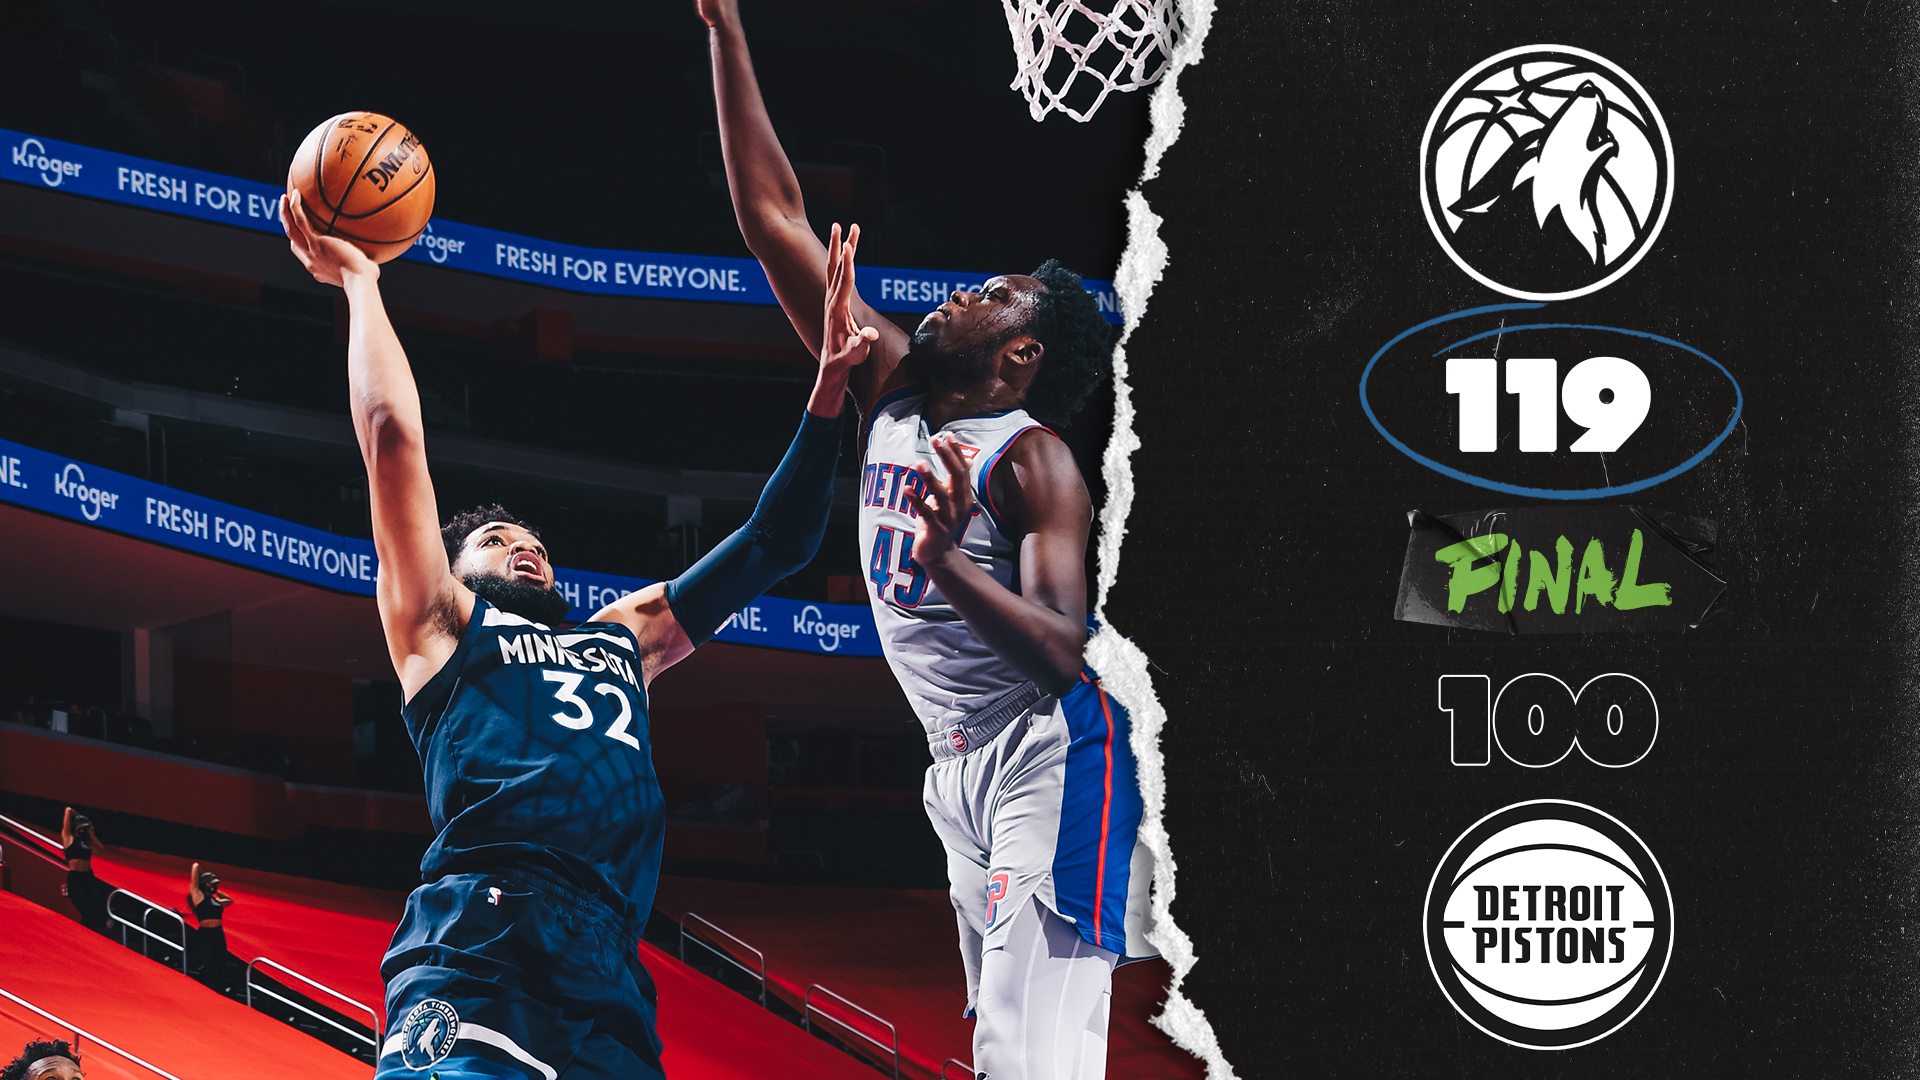 Highlights | Minnesota Timberwolves 119-100 Detroit Pistons - May 11, 2021